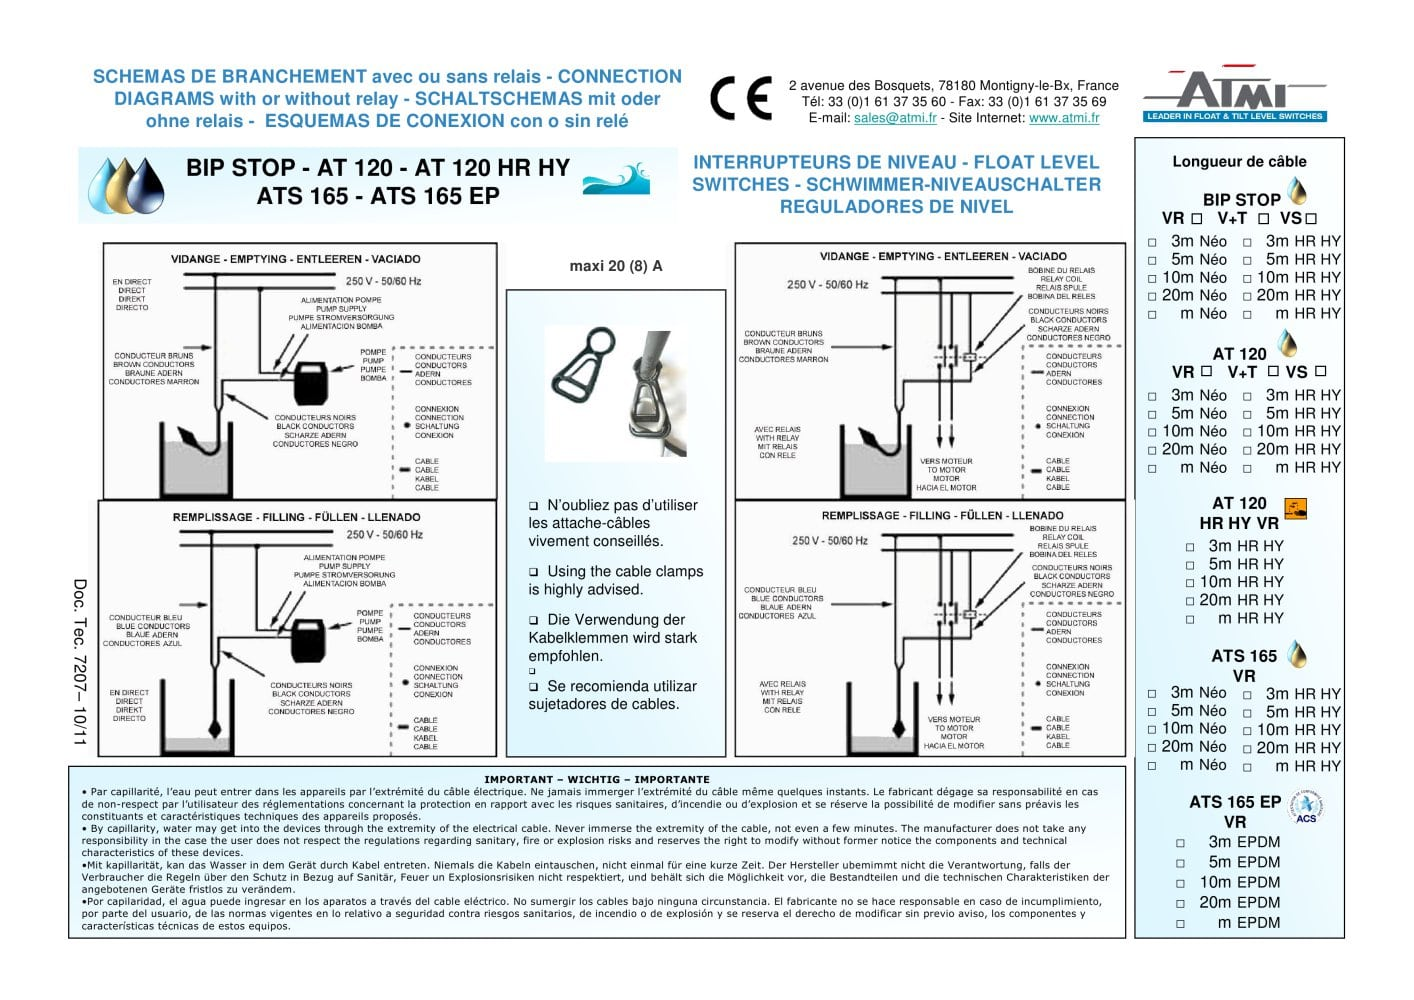 Wiring A Ats Best Electrical Circuit Diagram Sederhana Diagrams Bip Stop At Atmi Pdf Catalogue Rh Directindustry Com Salzer